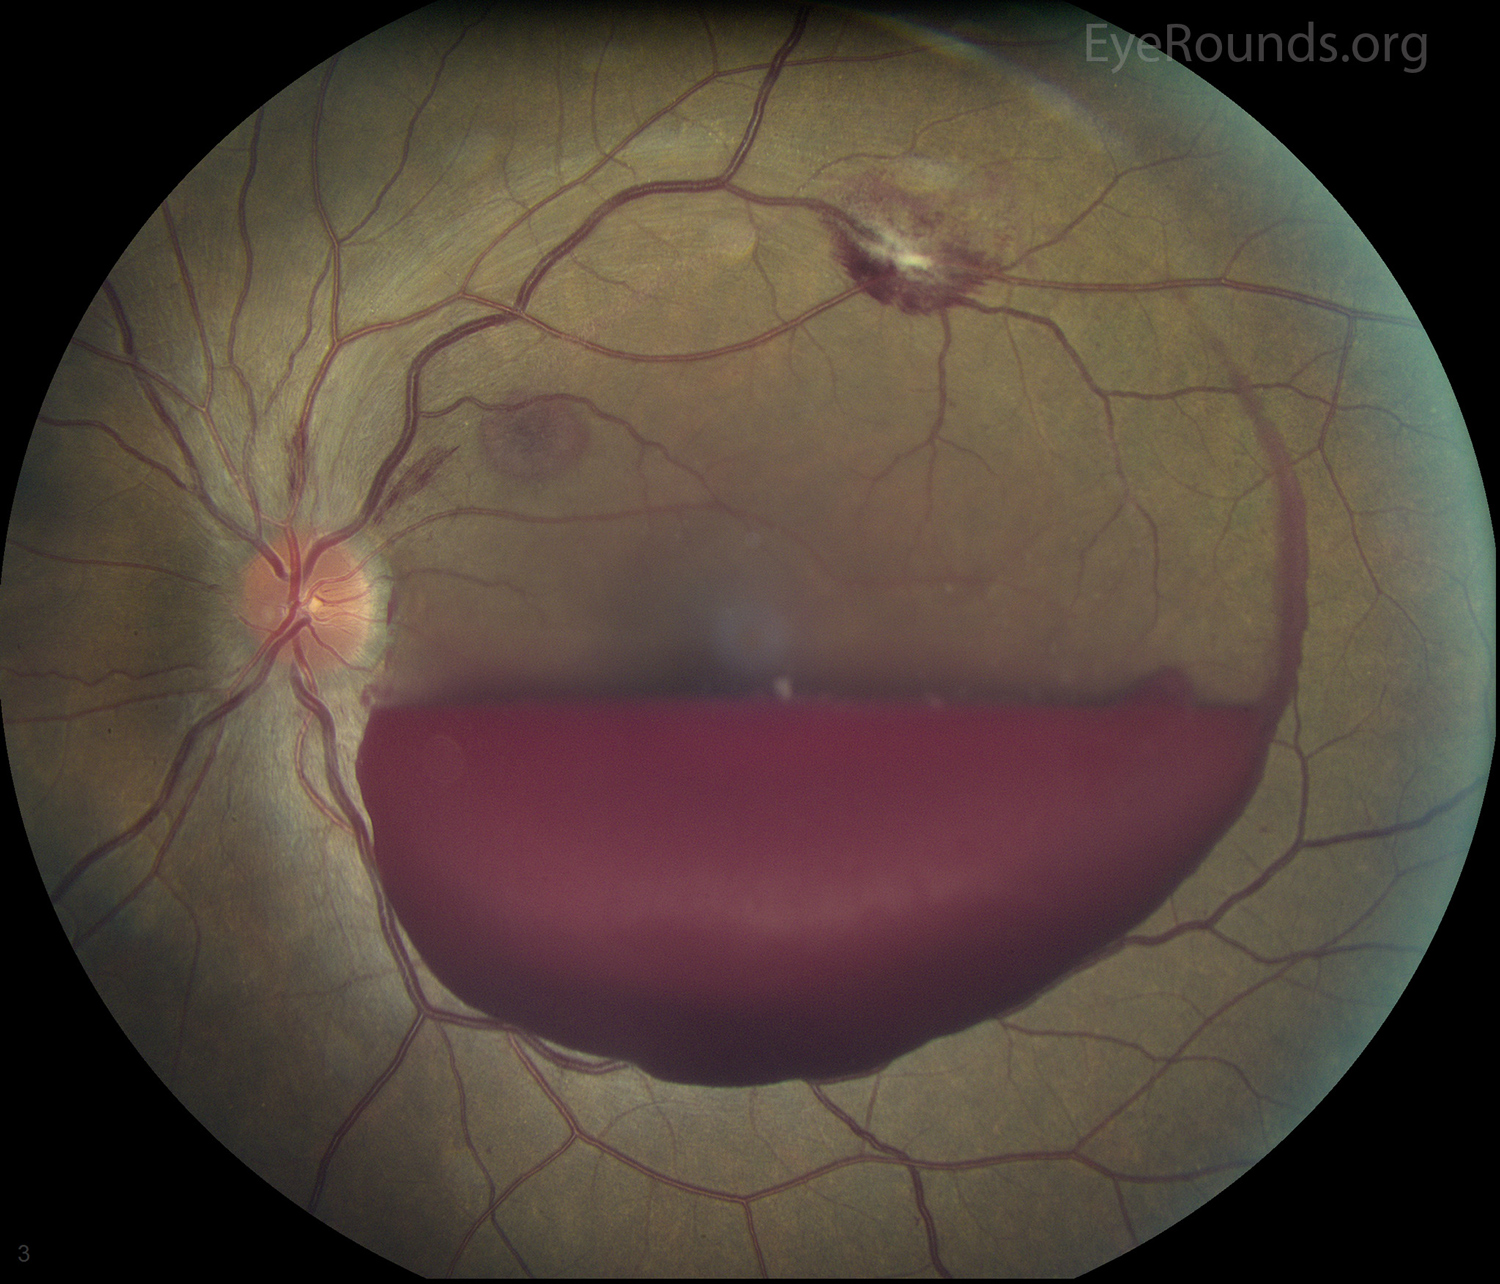 Vitreous Hemorrhage: From One Medical Student to Another